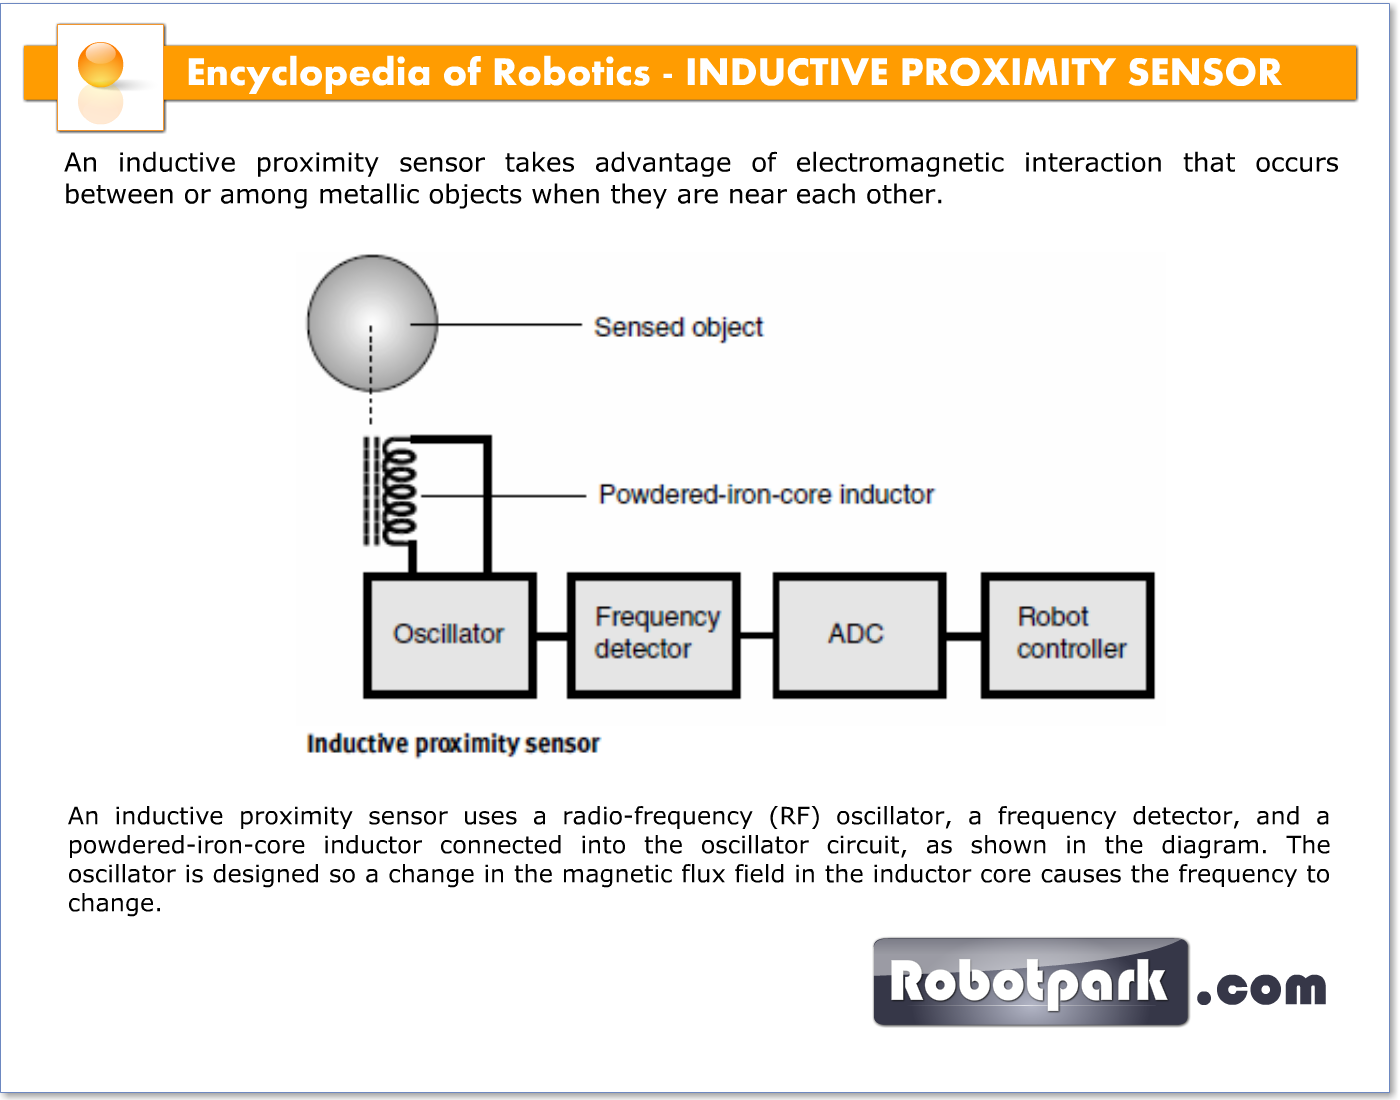 Inductive Proximity Sensor 21069 Robotpark Academy Magnetic Switch An Uses A Radio Frequency Rf Oscillator Detector And Powdered Iron Core Inductor Connected Into The